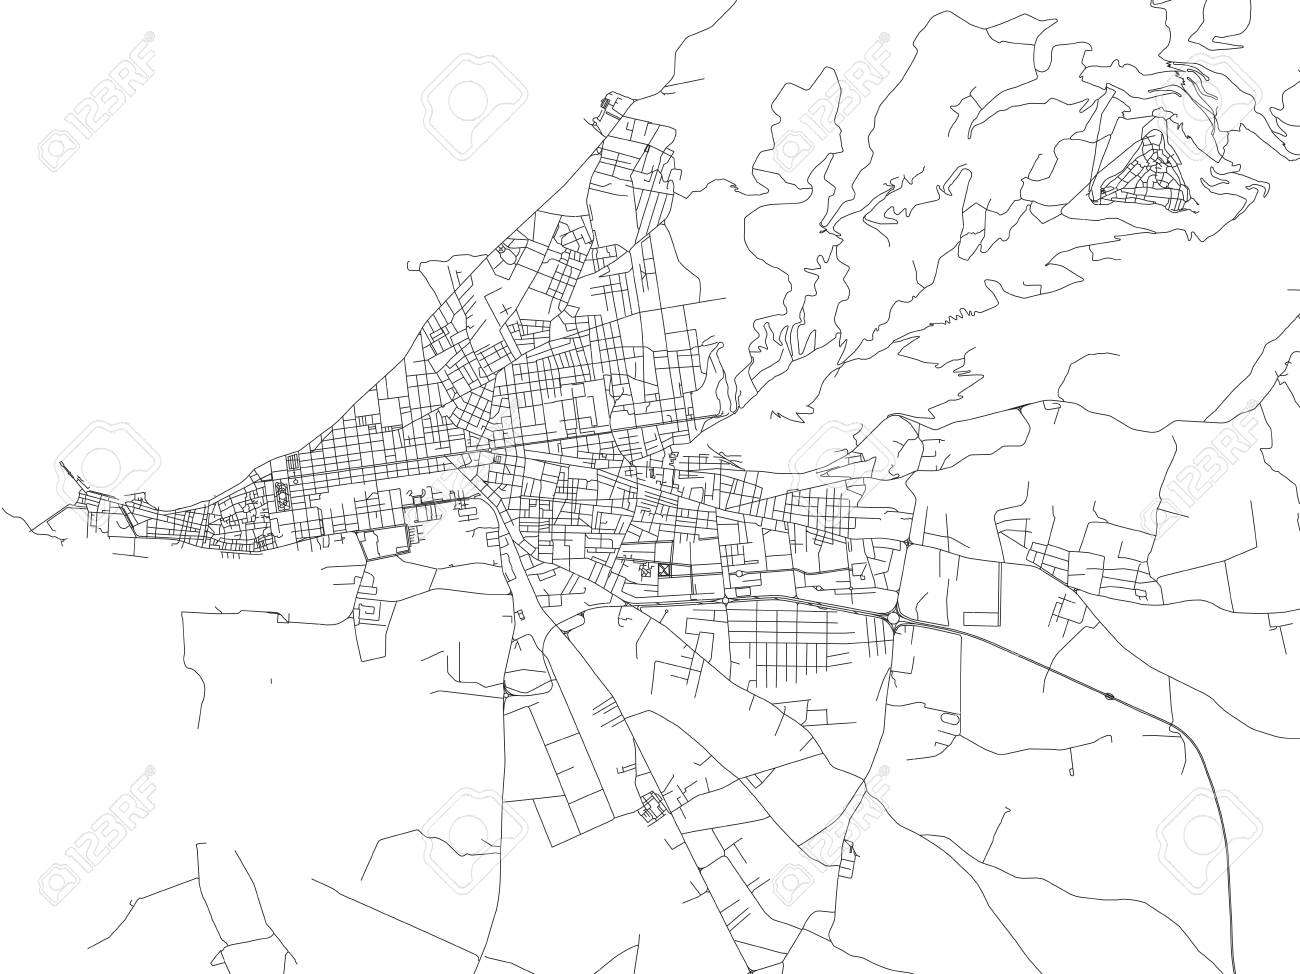 Regional Italy Map.Streets Of Trapani Map Of The City Regional Capital Sicily